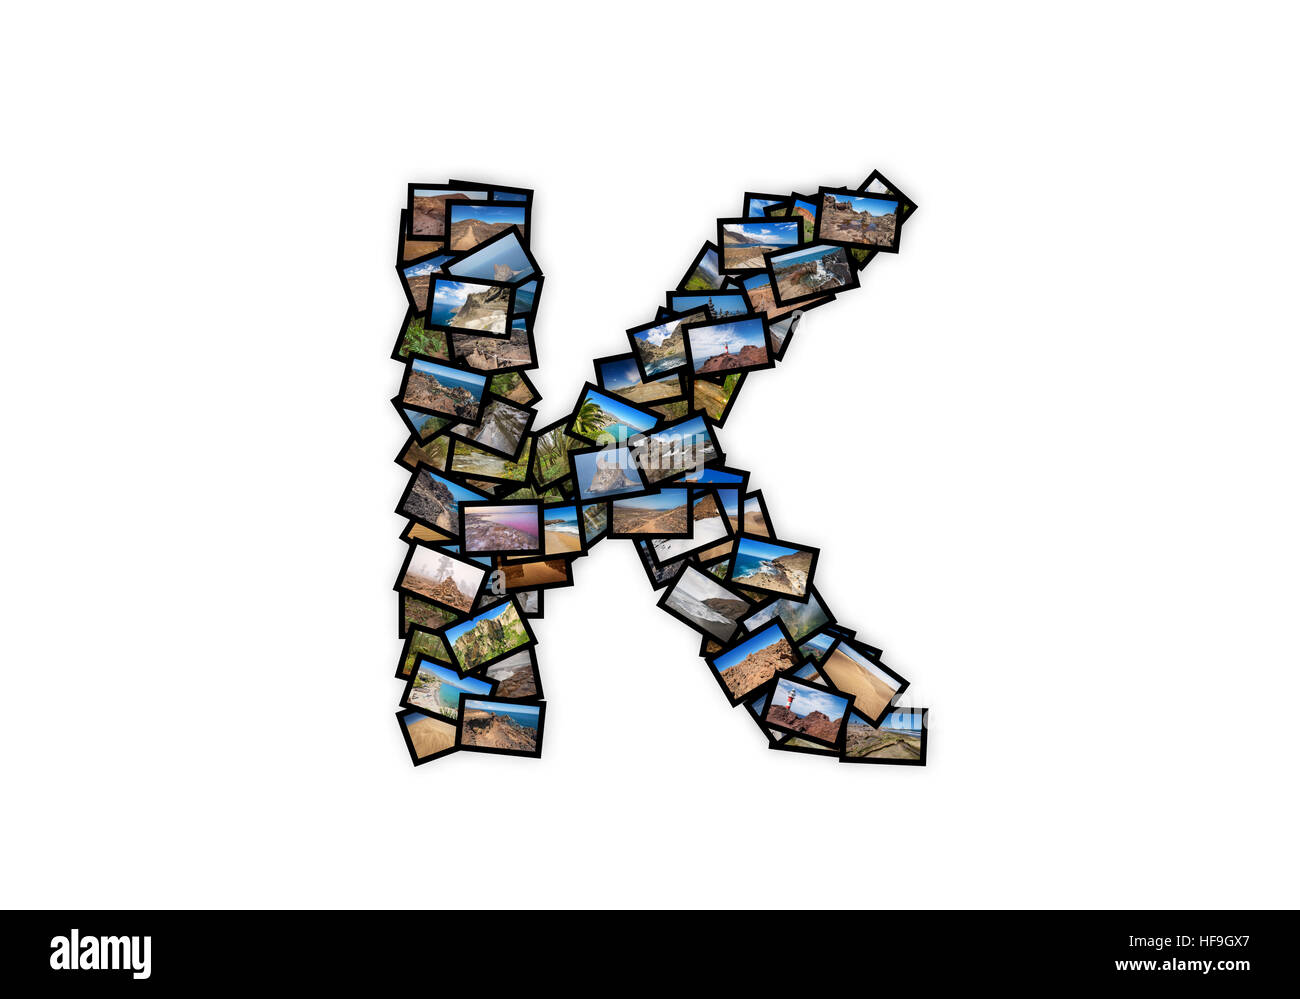 Letter K uppercase font shape alphabet collage made of my best landscape photographs. Version 2. - Stock Image